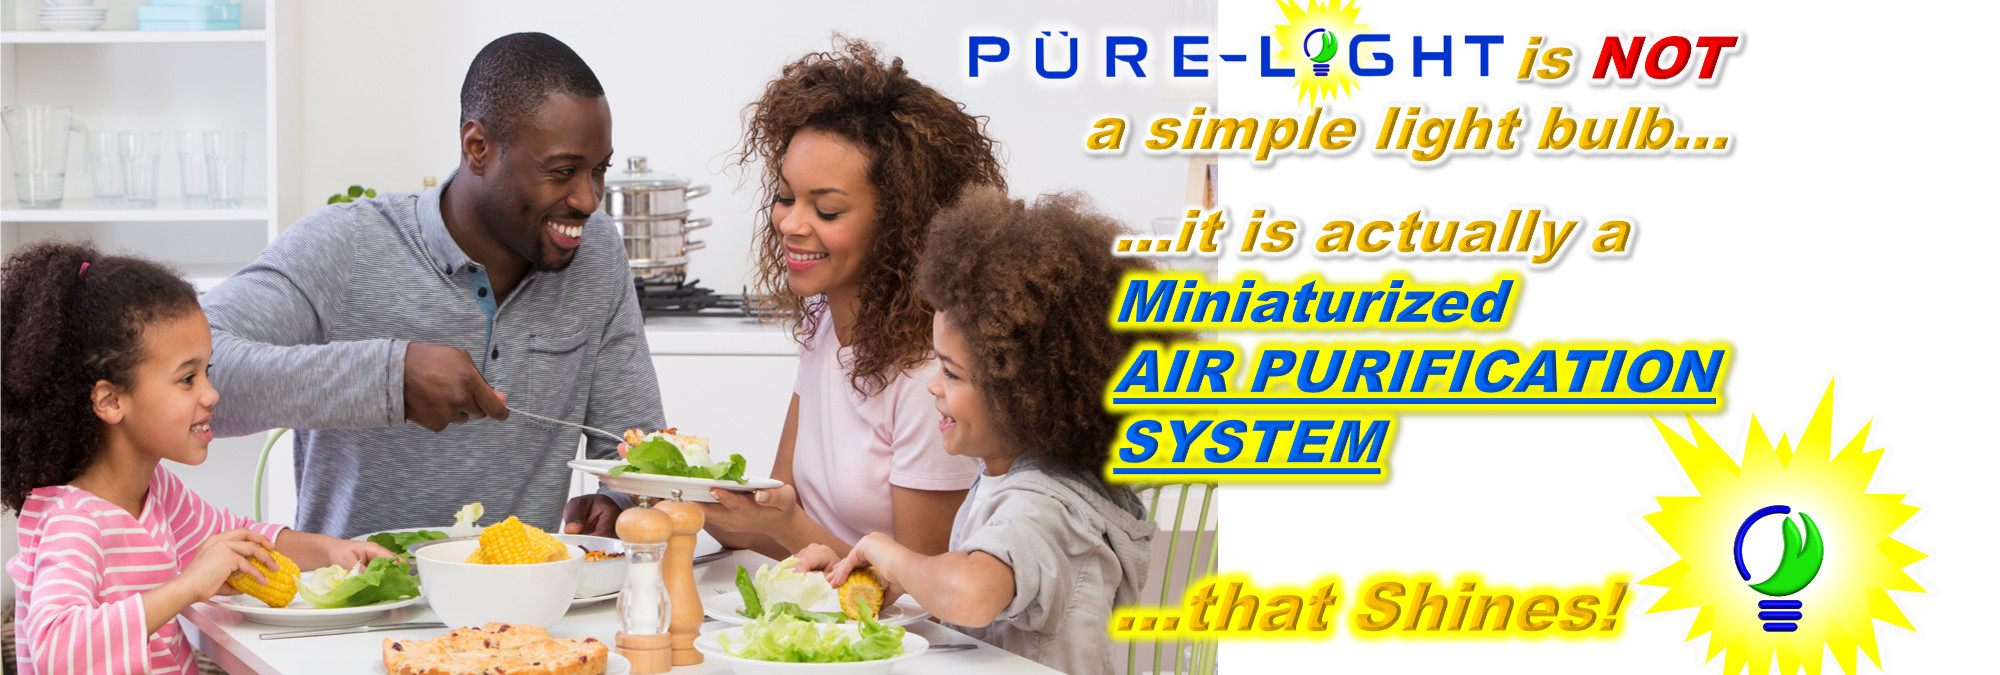 Miniaturized Air Purification - New